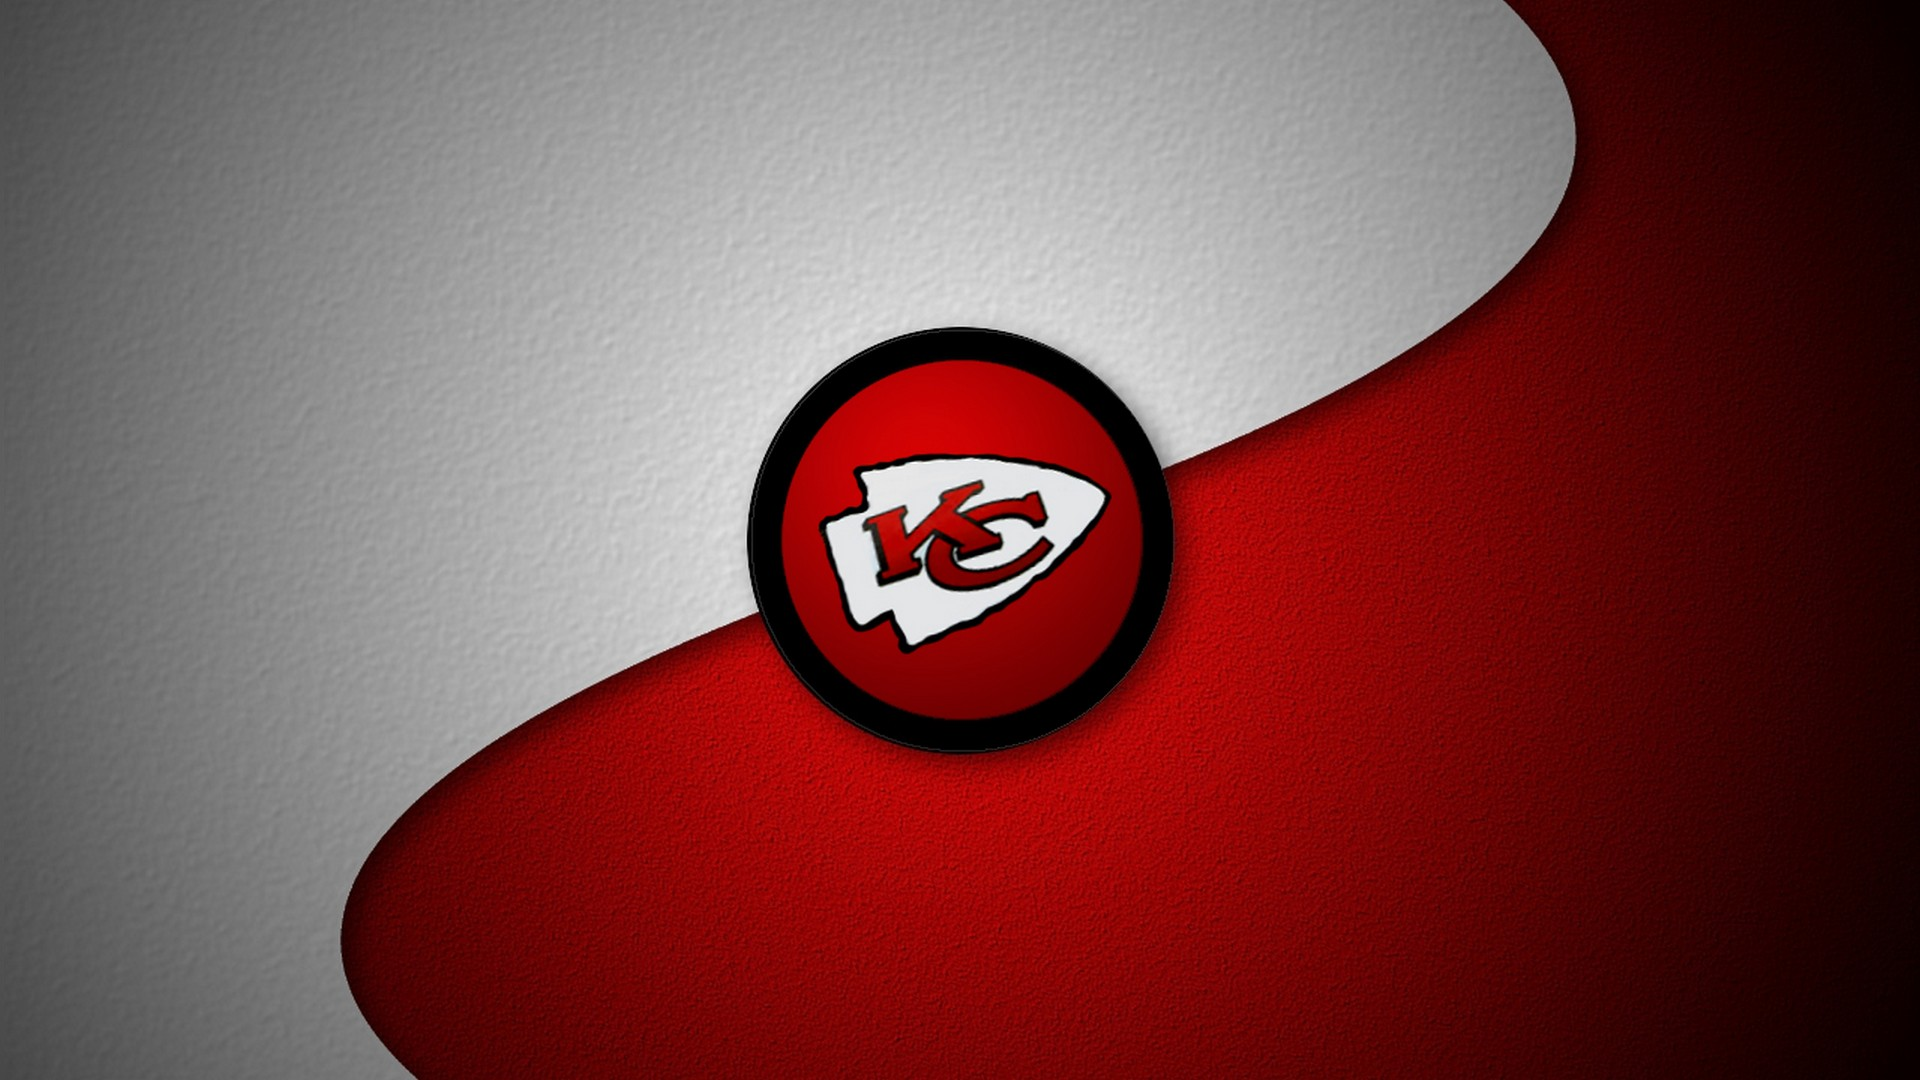 Chiefs Iphone Wallpaper Kansas City Chiefs Desktop Wallpapers 2019 Nfl Football